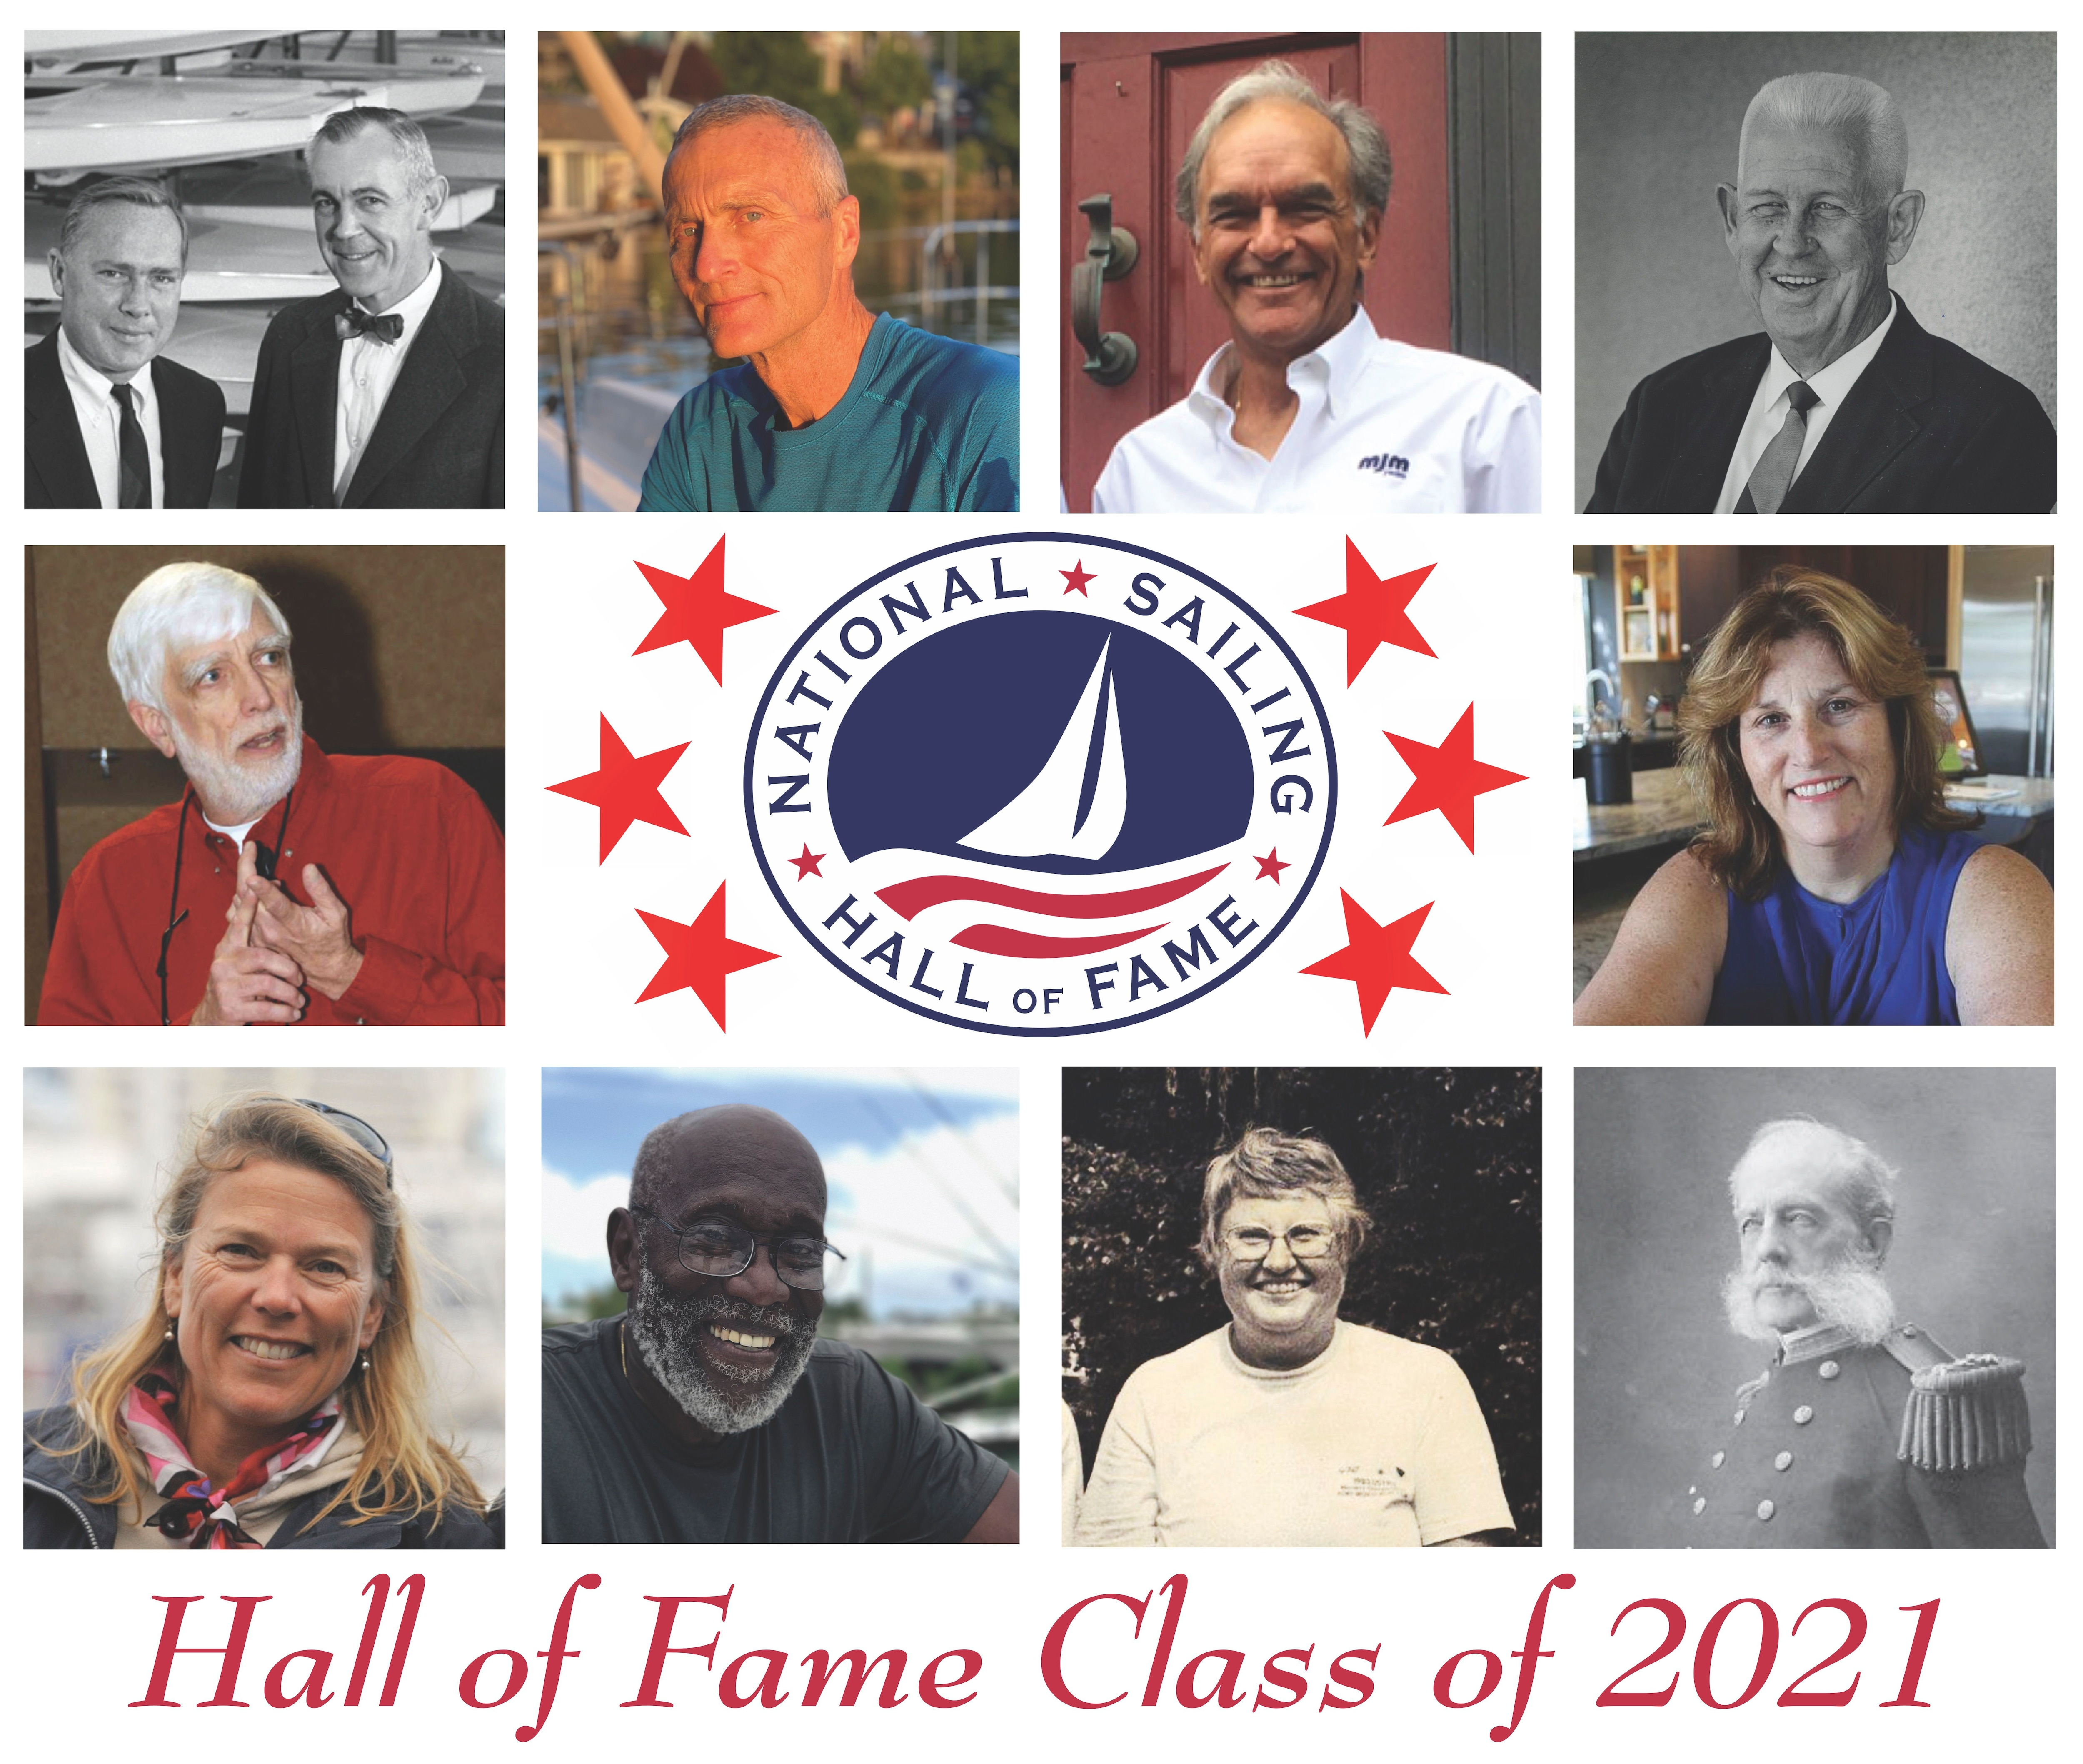 From top left (clockwise): Alexander Bryan and Cortlandt Heyniger, William Carl Buchan, Agustin Diaz, Gilbert T. Gray, Lynne Jewell Shore, Rear Admiral Stephen B. Luce, Jane Wiswell Pegel, Captain William D. Pinkney (Lifetime Achievement), Dawn Riley and Richard Rose.